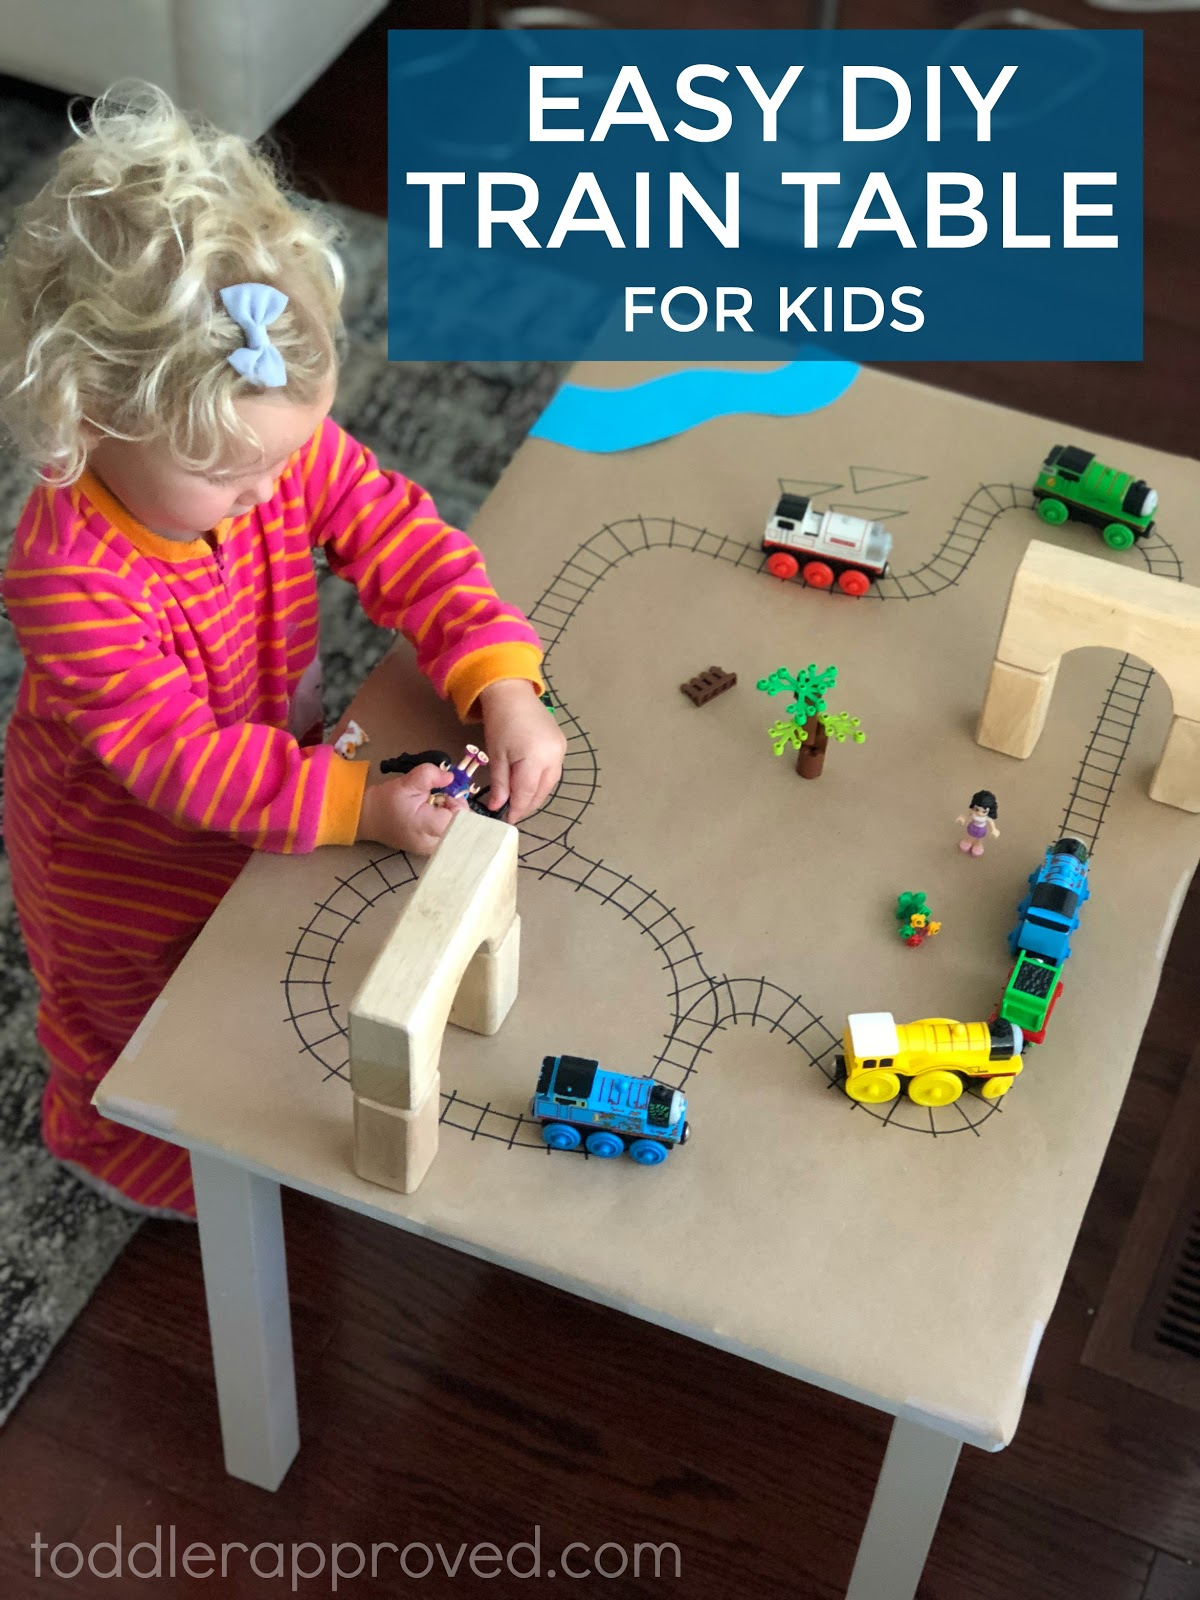 Toddler Approved!: Easy DIY Paper Train Table for Kids